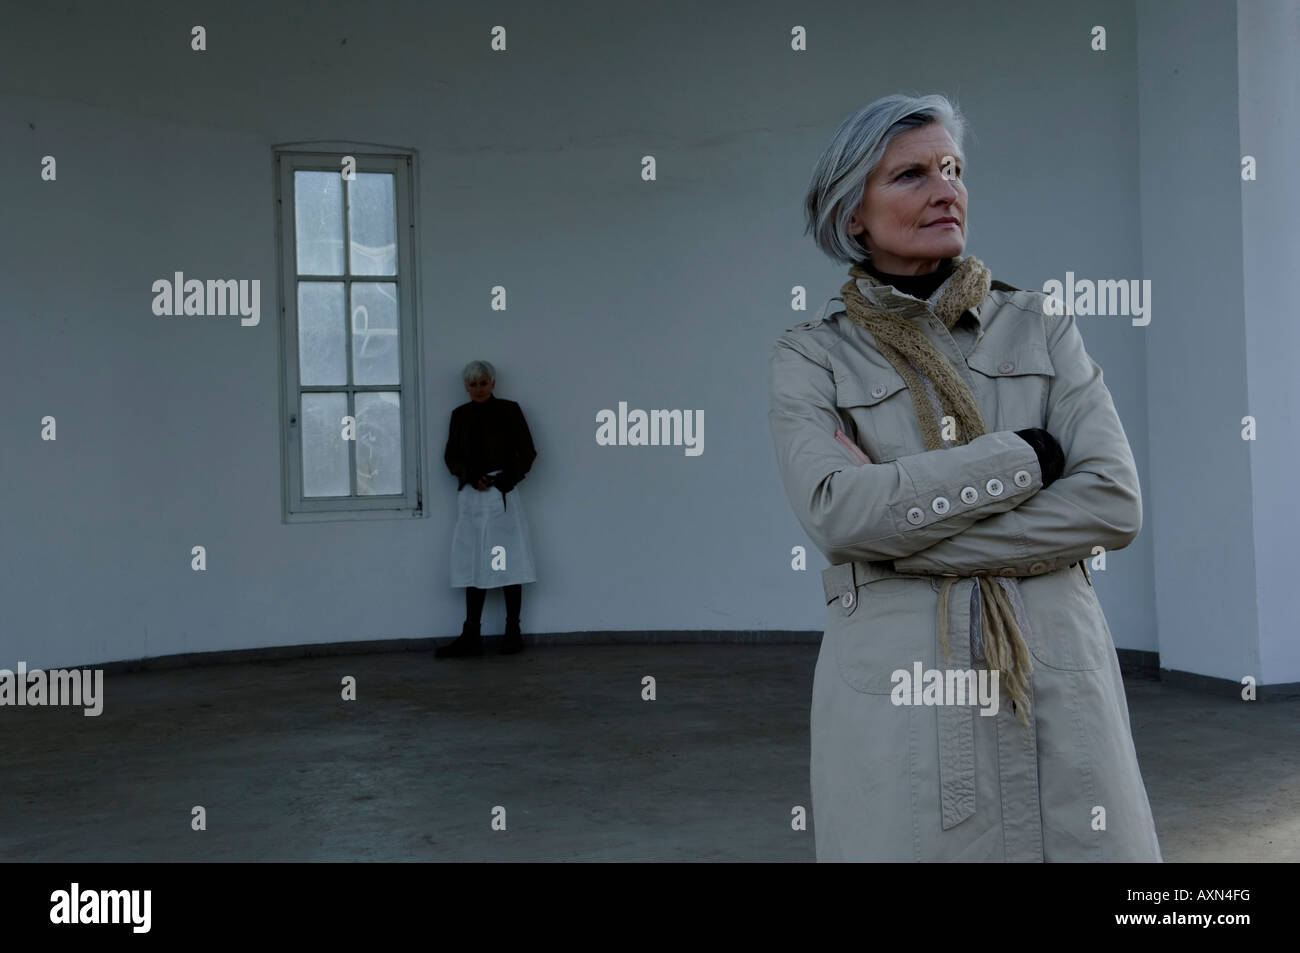 Two mature women standing in an empty room Stock Photo